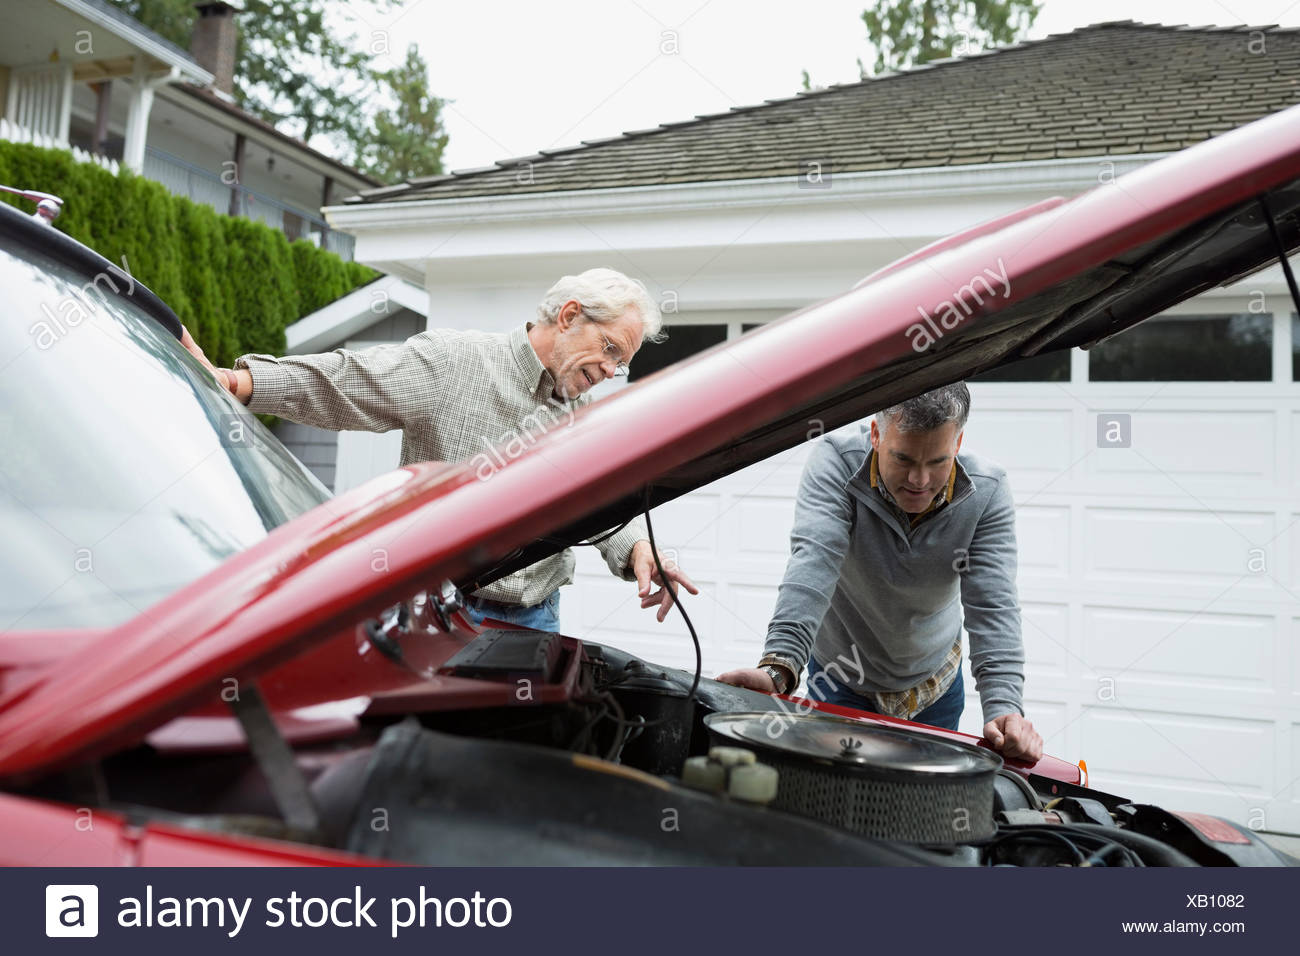 Father and son checking engine classic car driveway - Stock Image